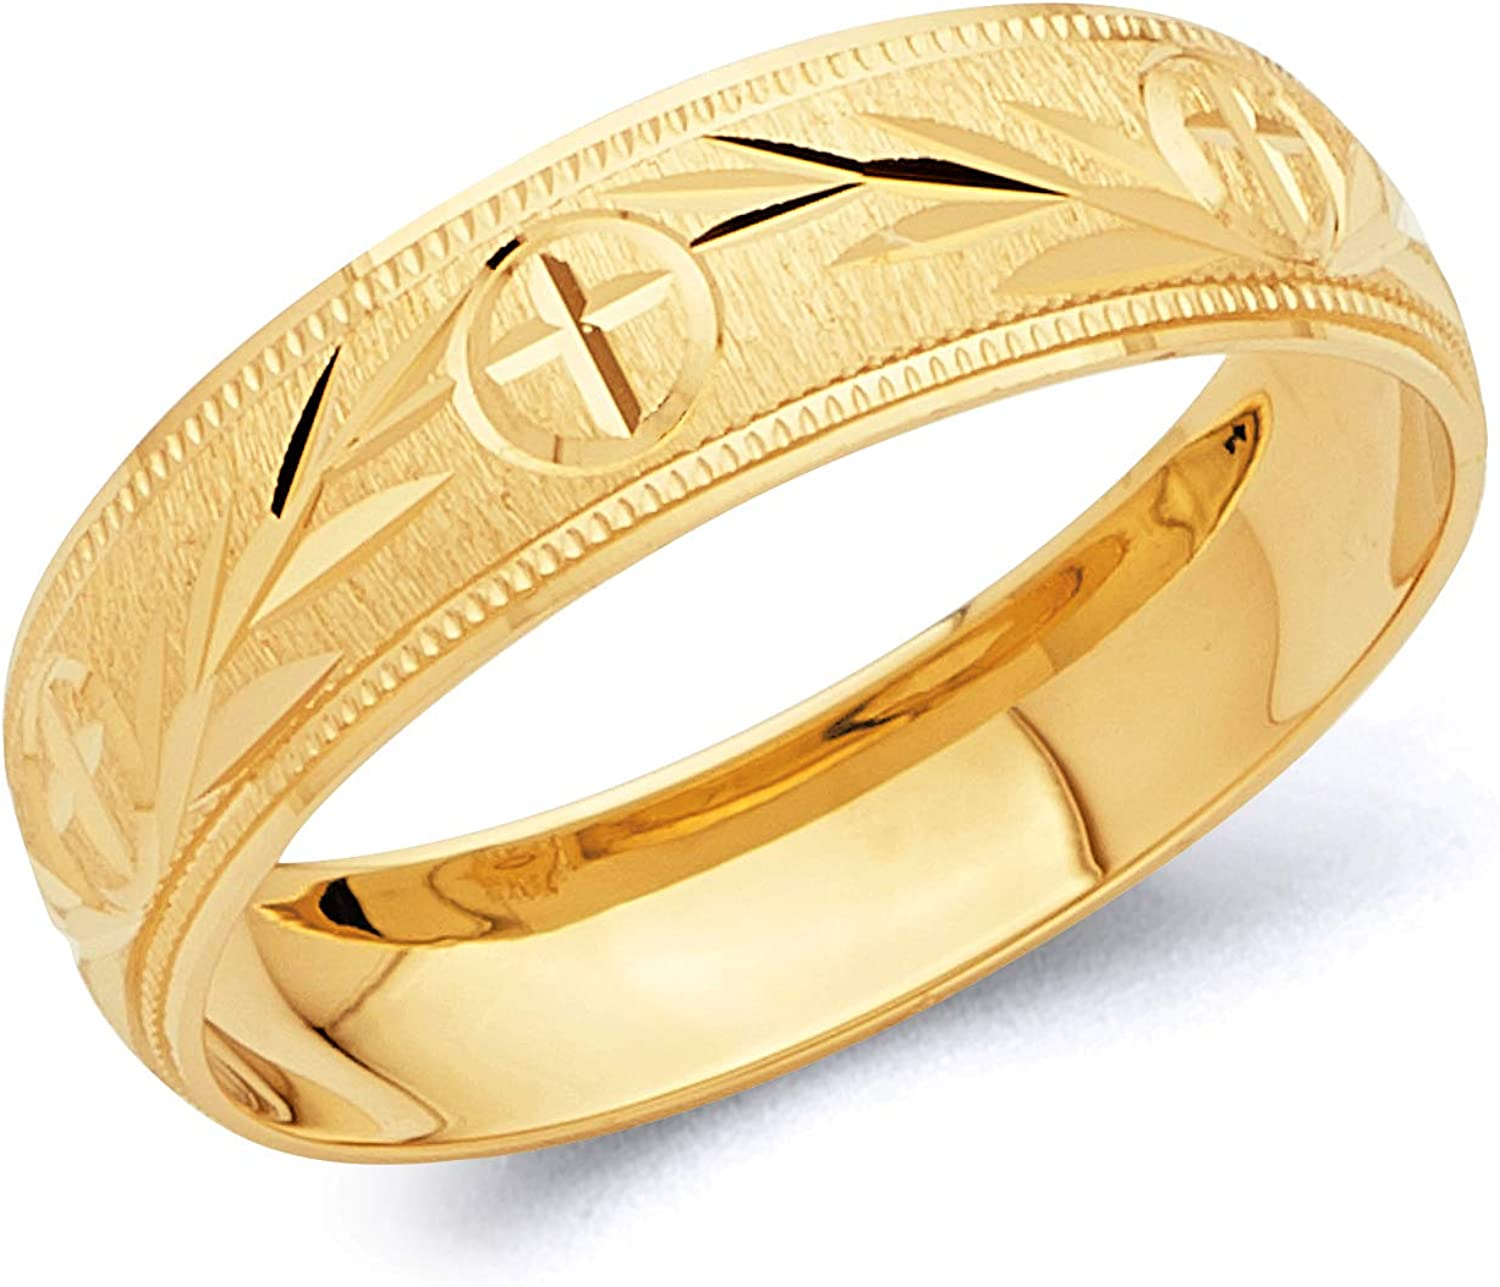 Wellingsale Mens Directly managed store Financial sales sale Solid 14k Yellow Wedd Diamond Gold Polished Cut